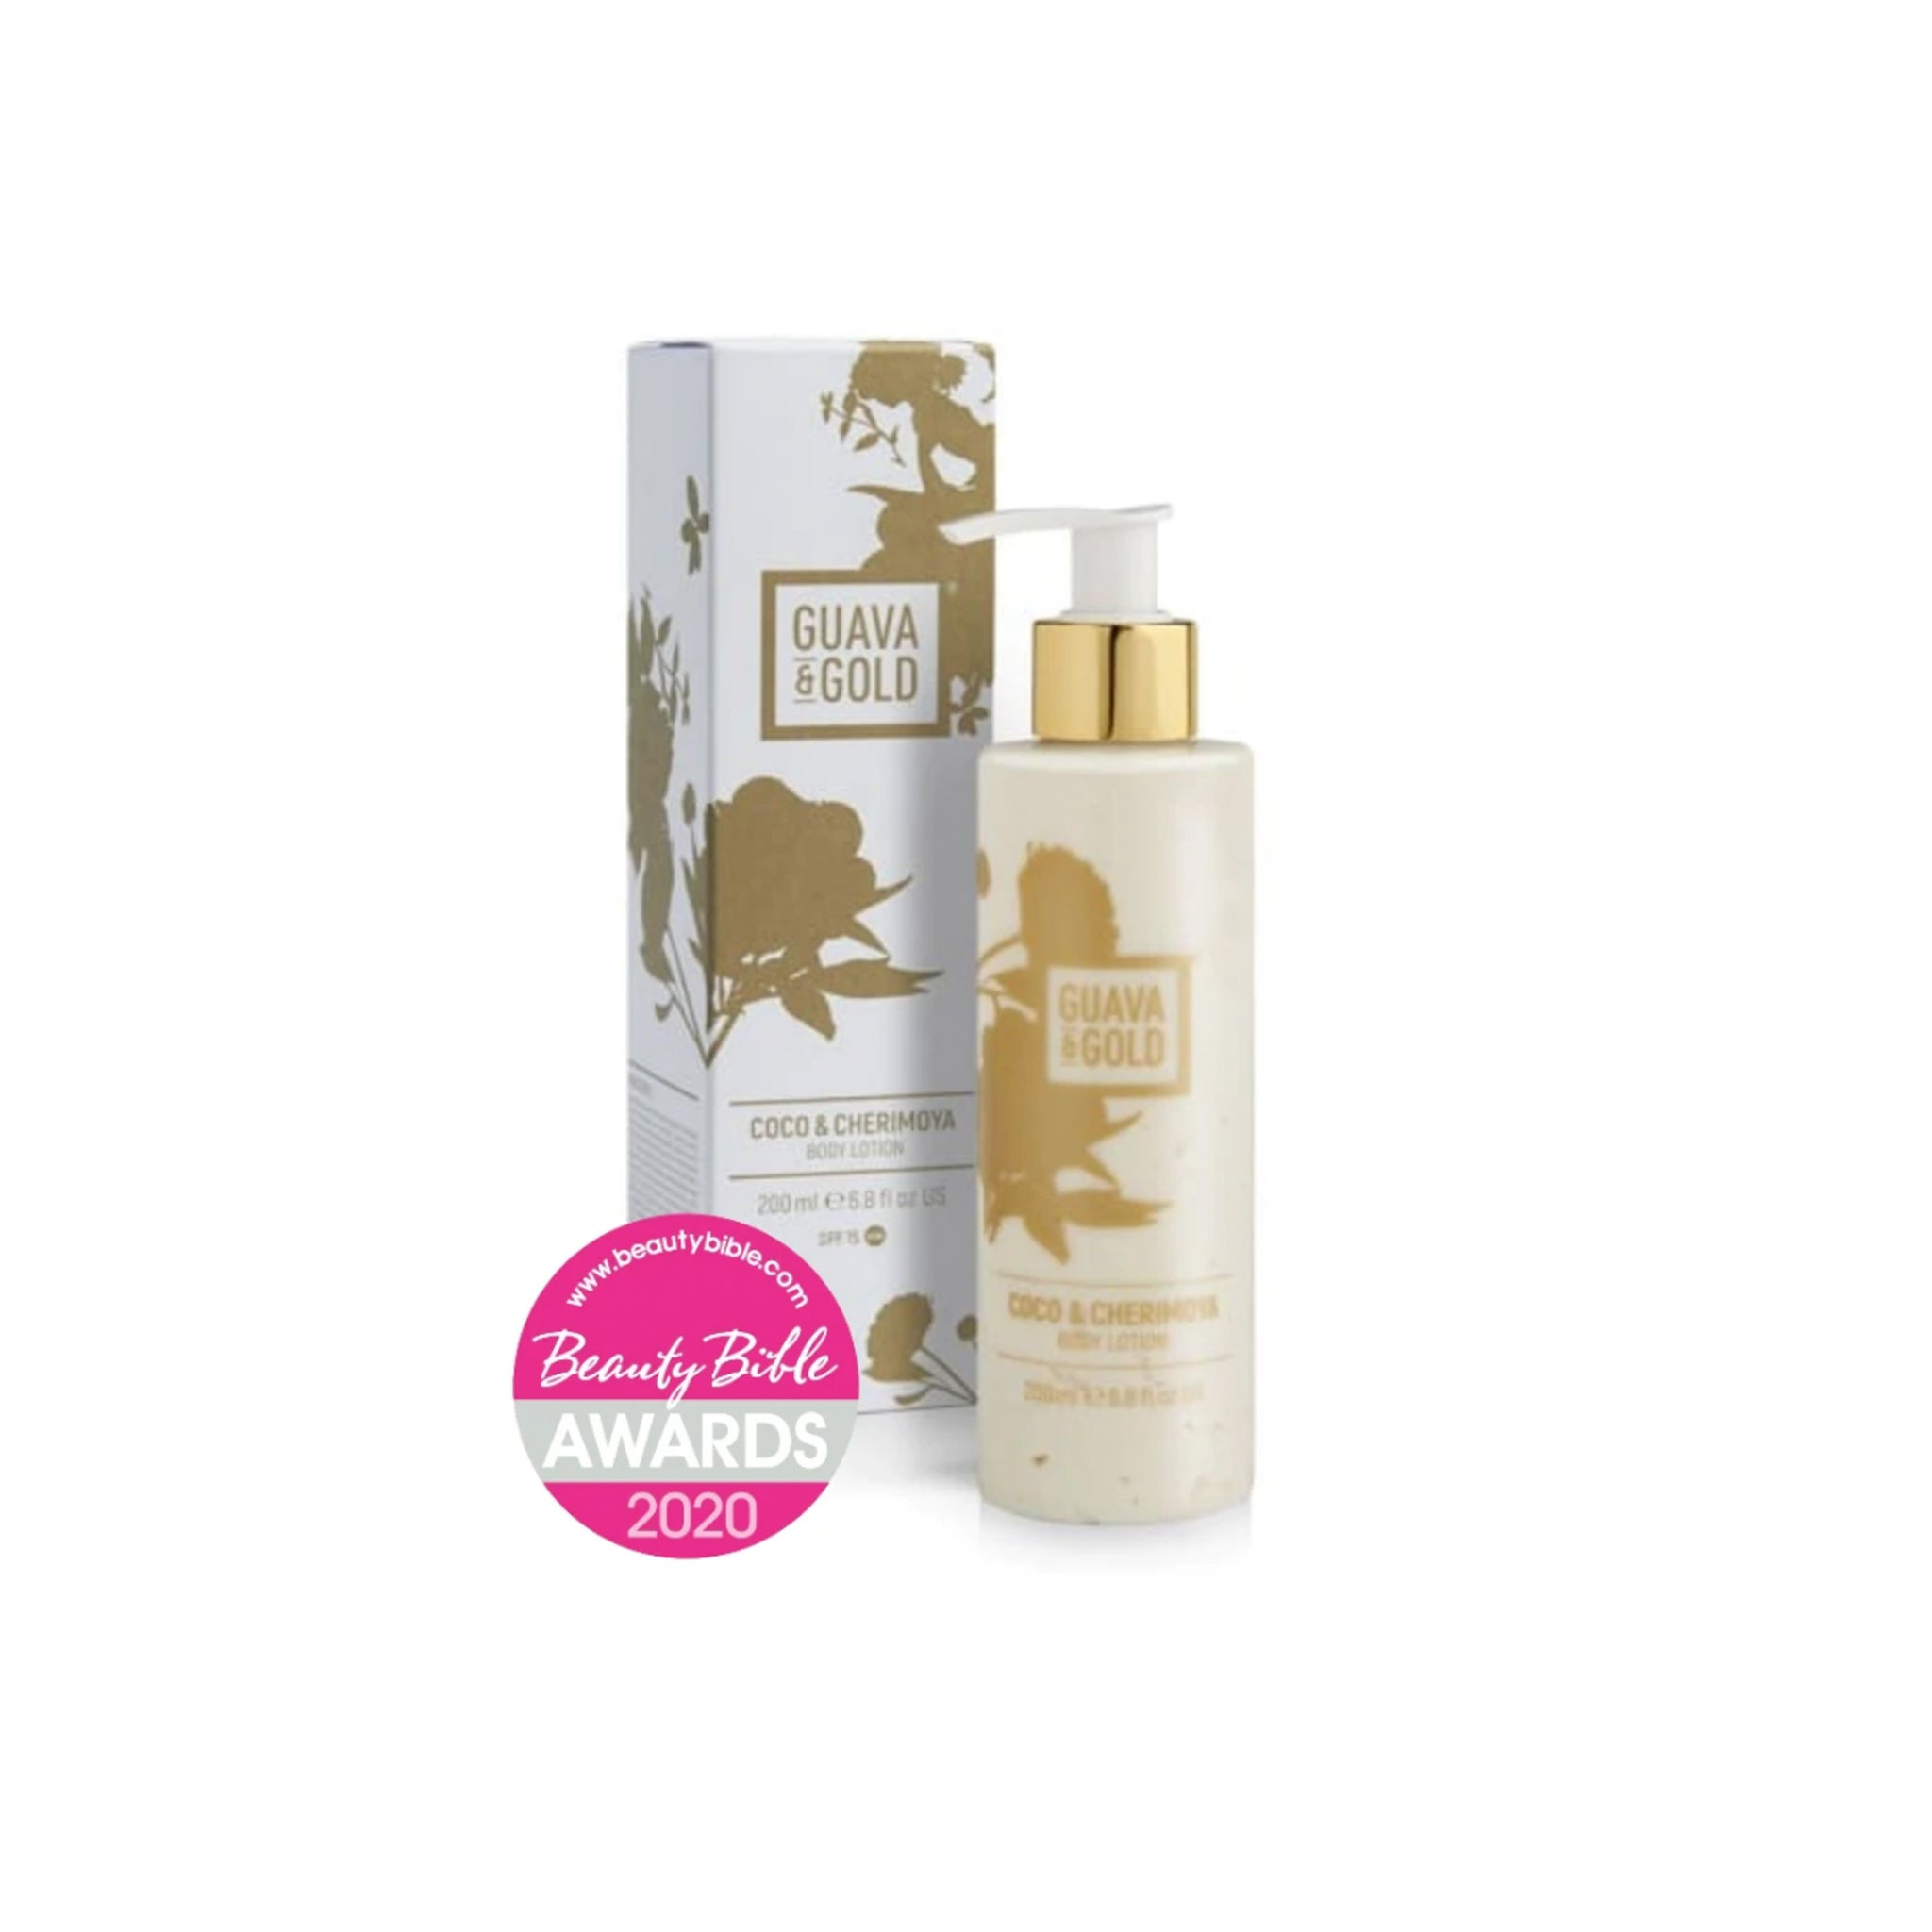 white and gold printed bottle and box of body lotion by Guava and Gold